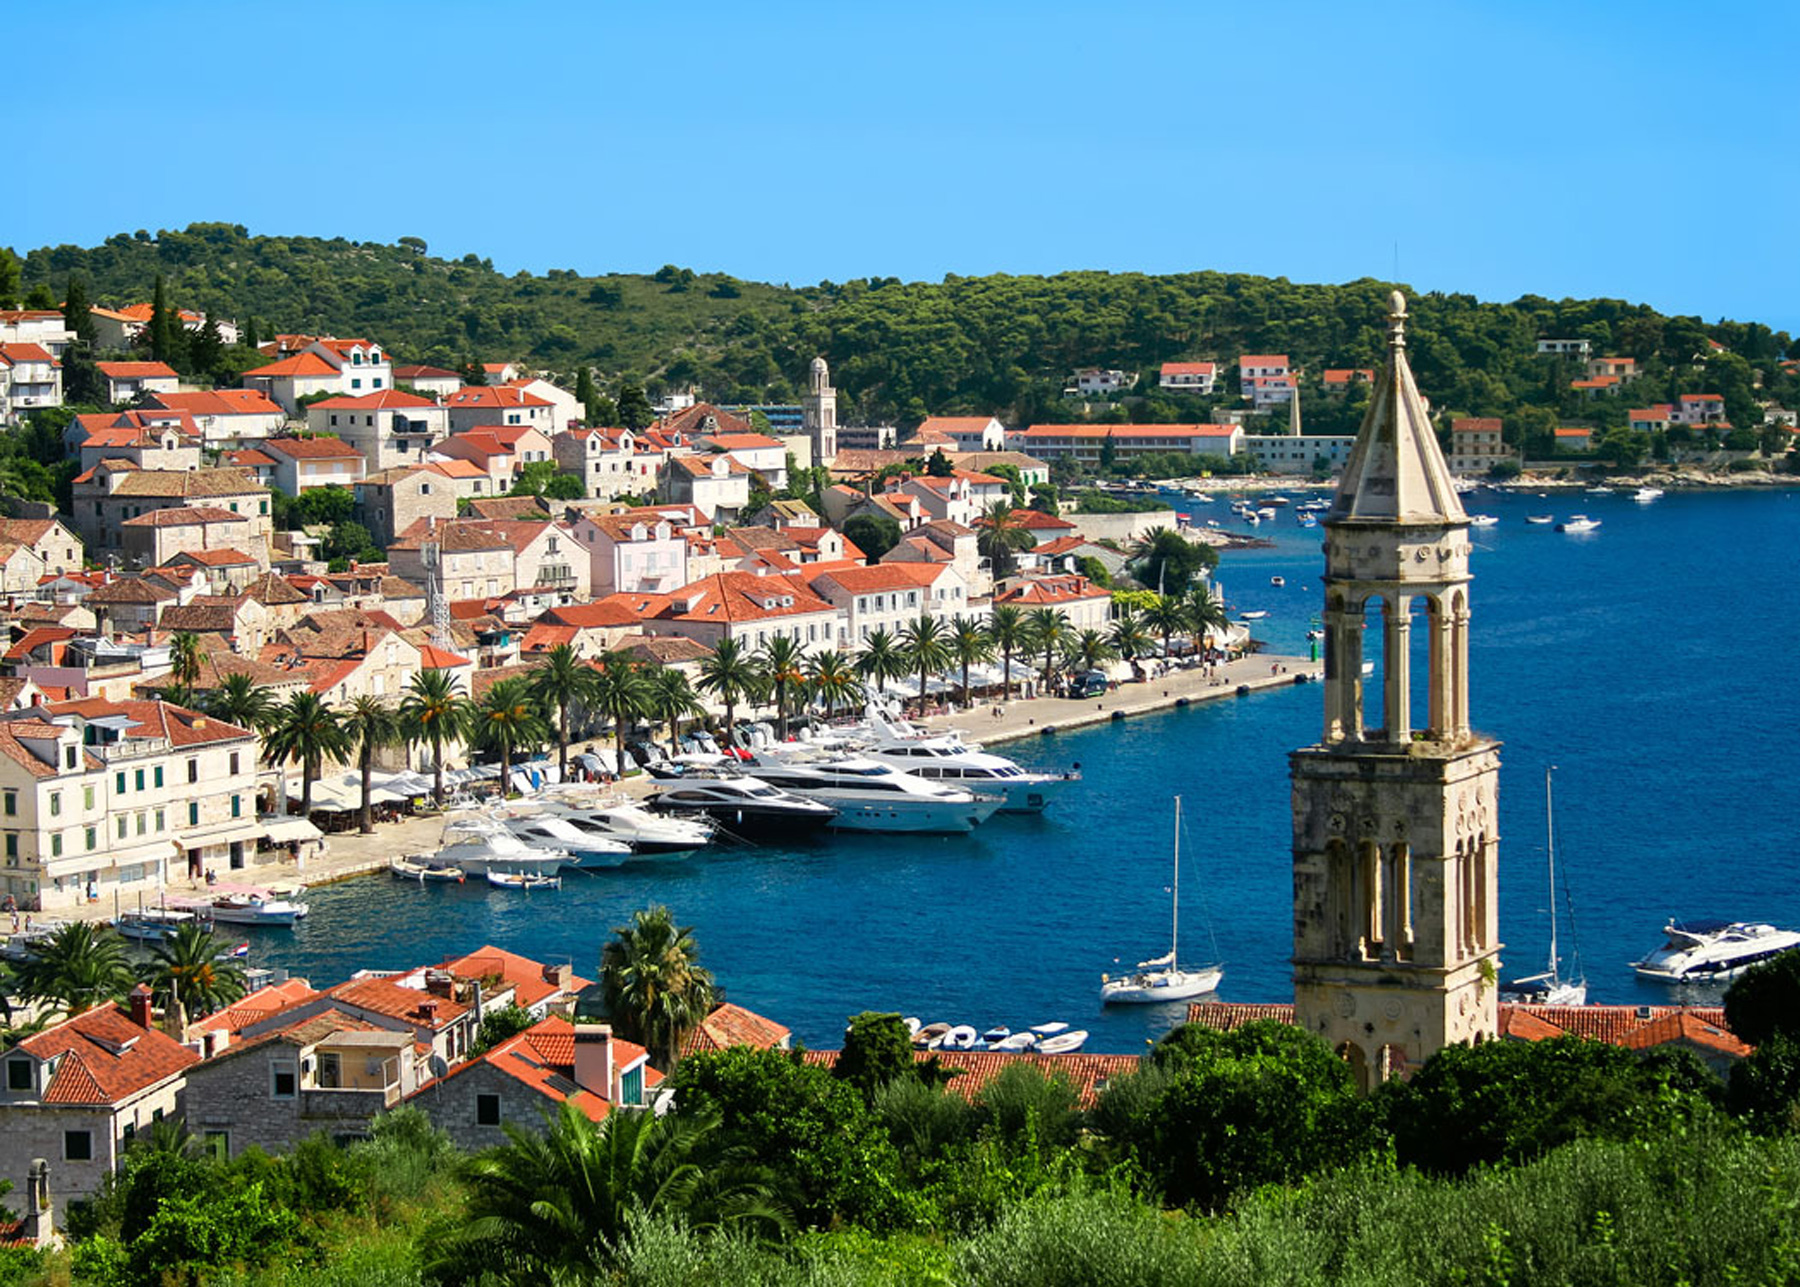 Harbor in Hvar, Croatia